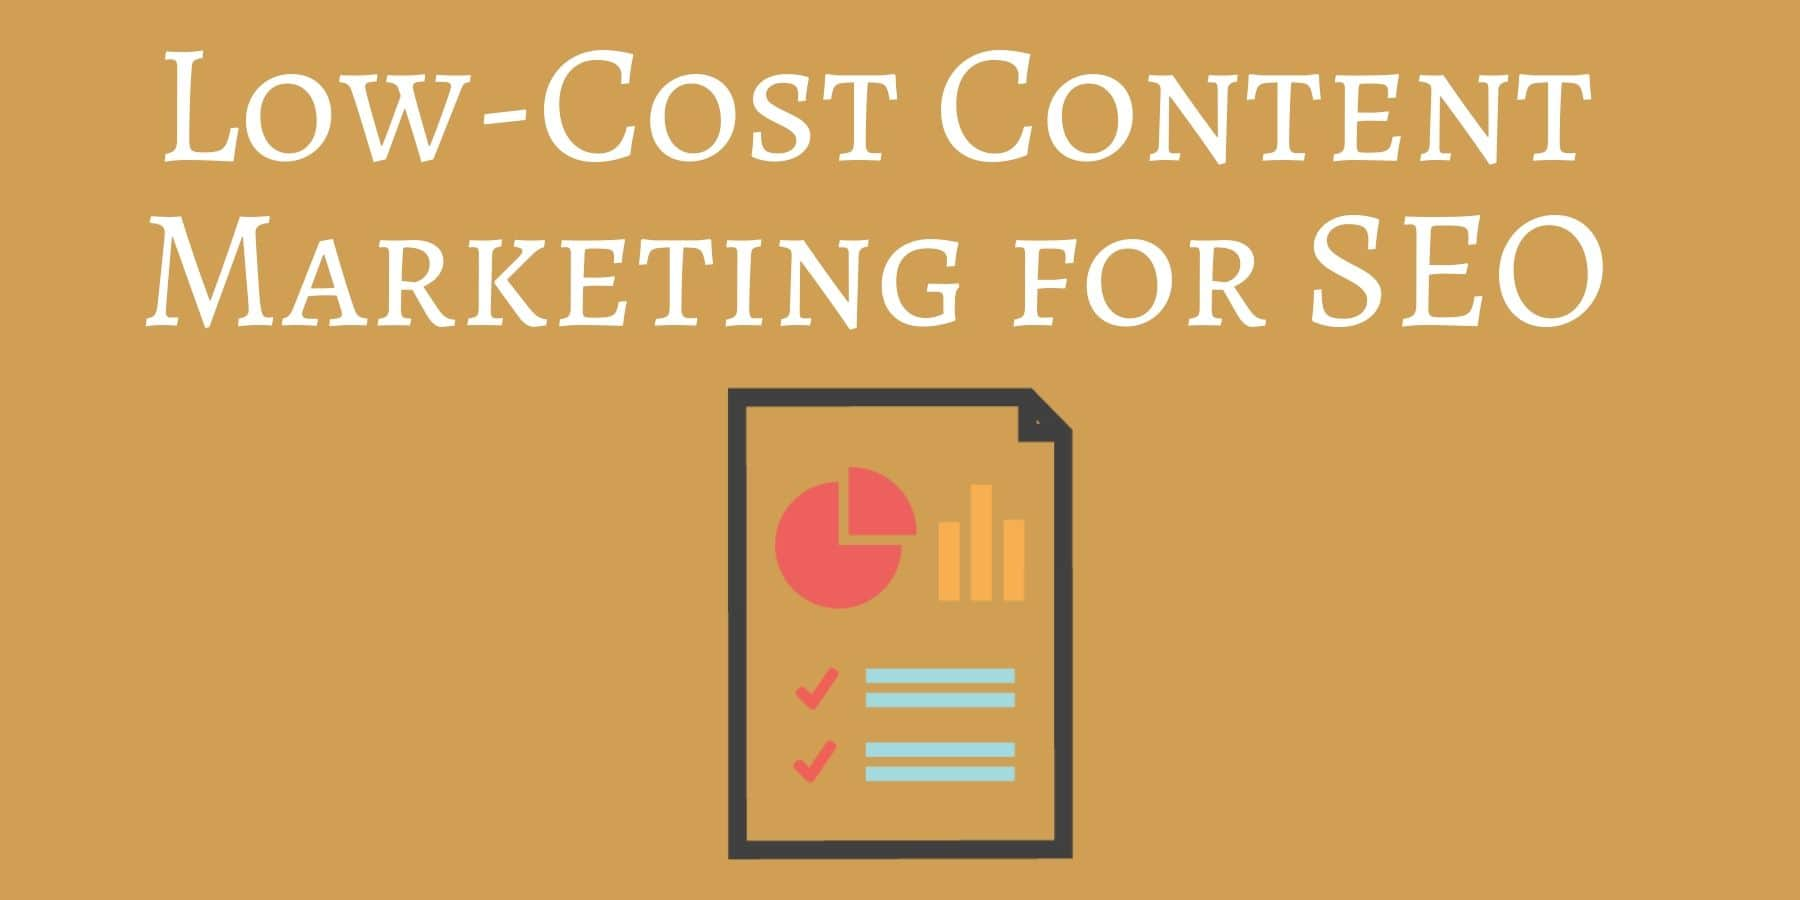 Low cost content marketing seo